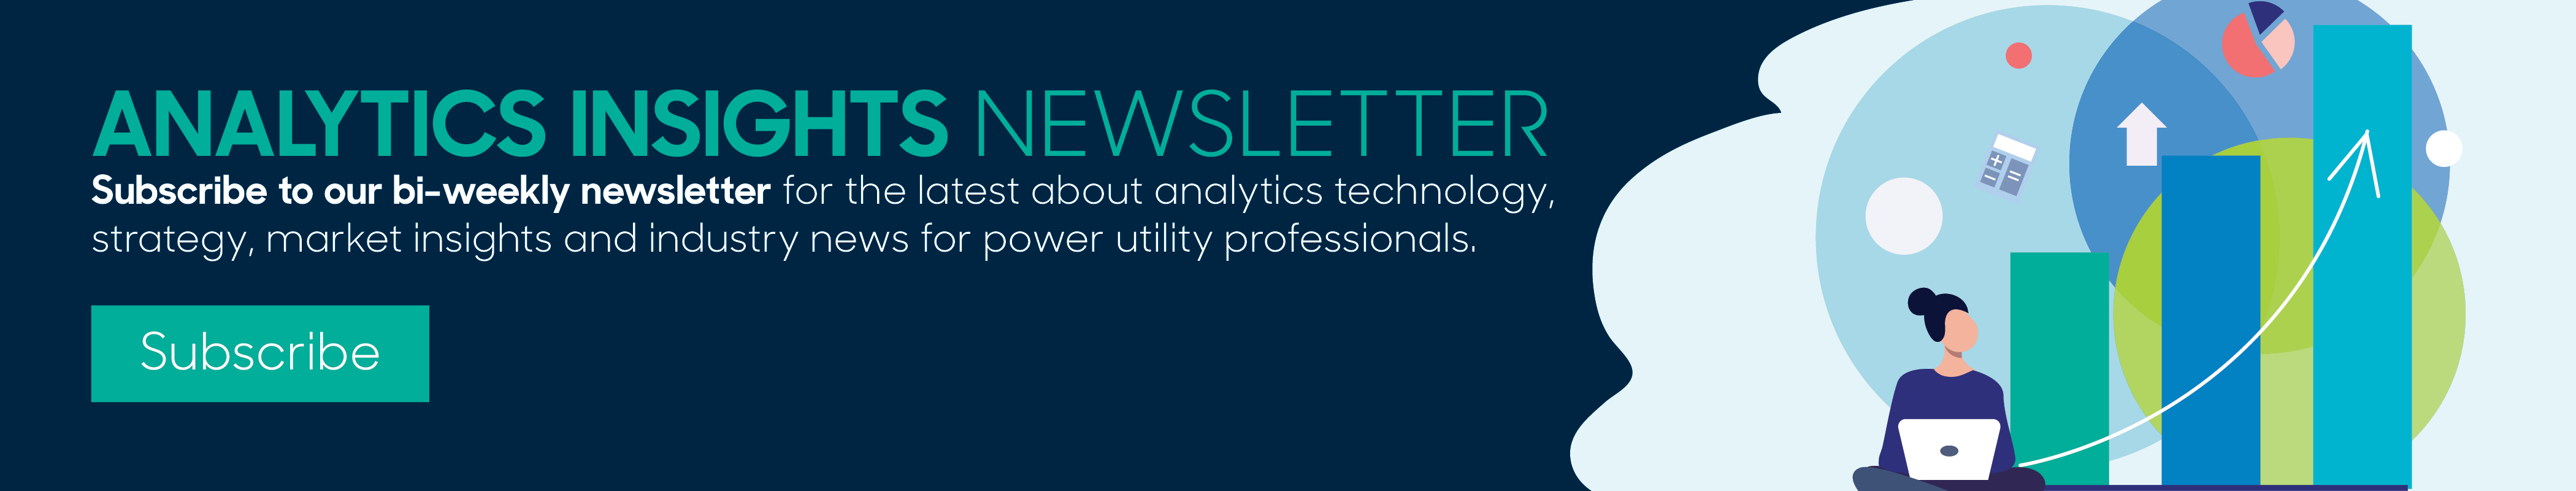 Sign Up For the Analytics Insights Newsletter